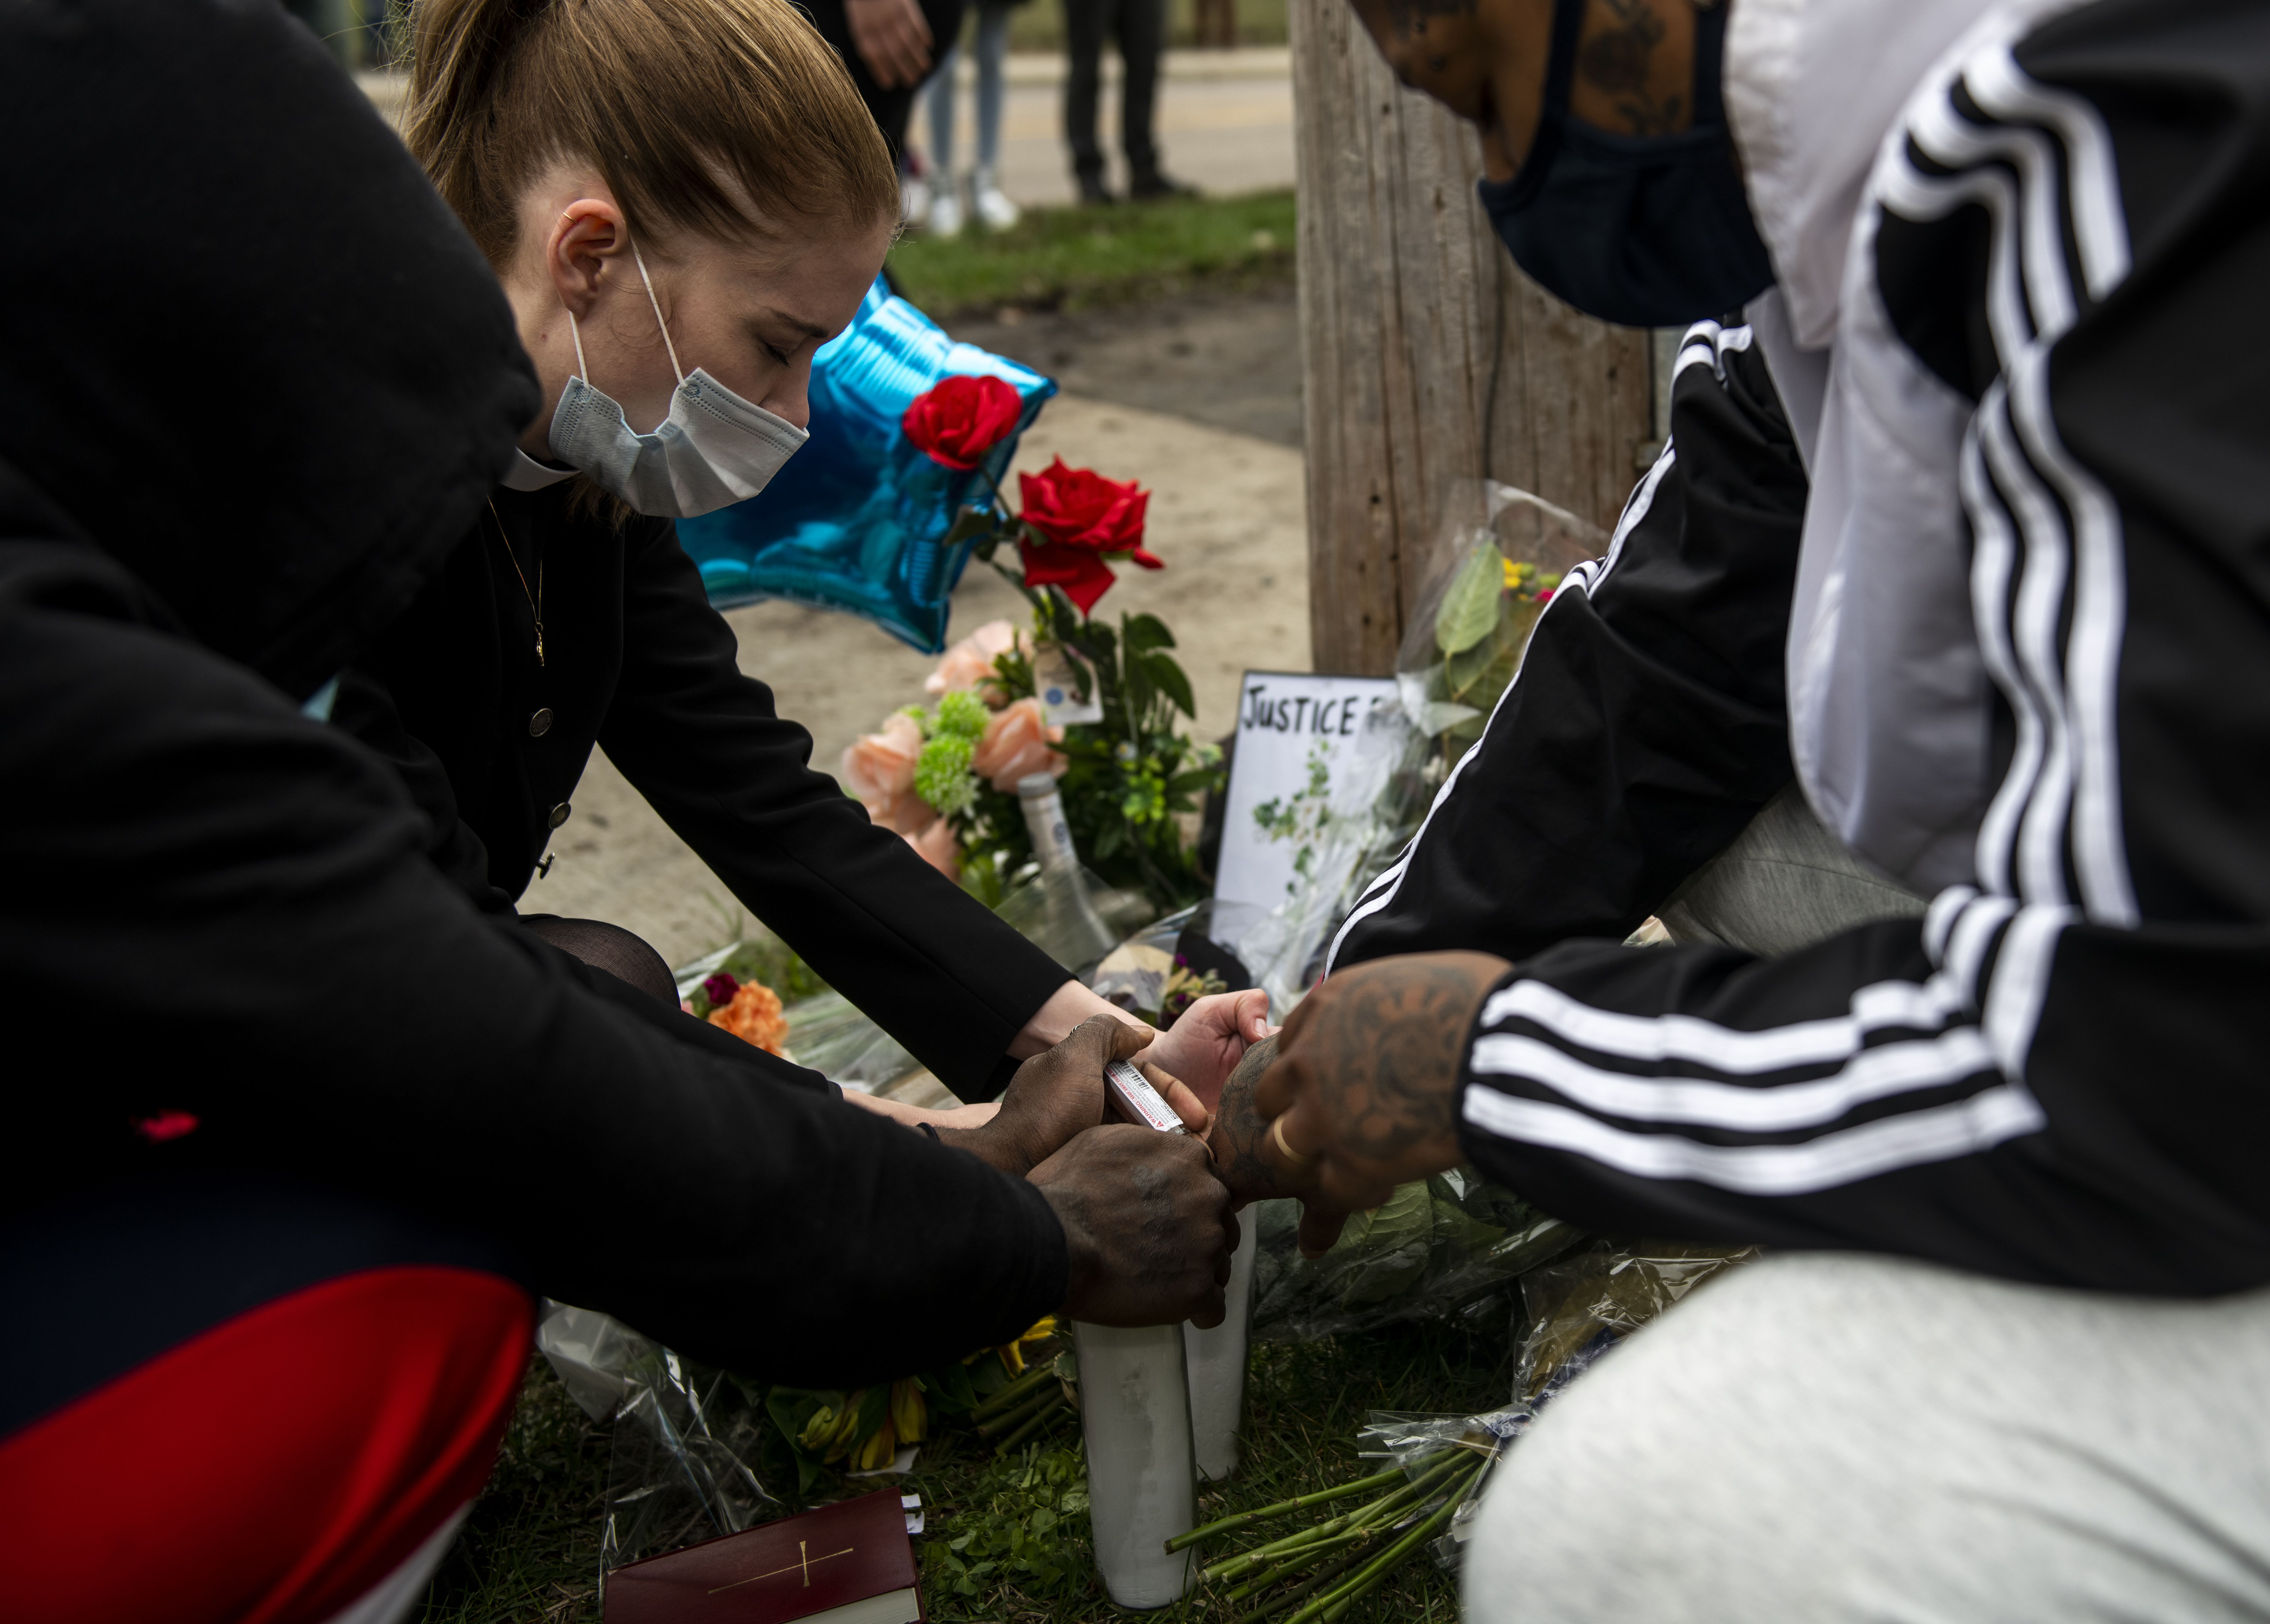 People pray over candles during a vigil for Daunte Wright on April 12, 2021 in Brooklyn Center